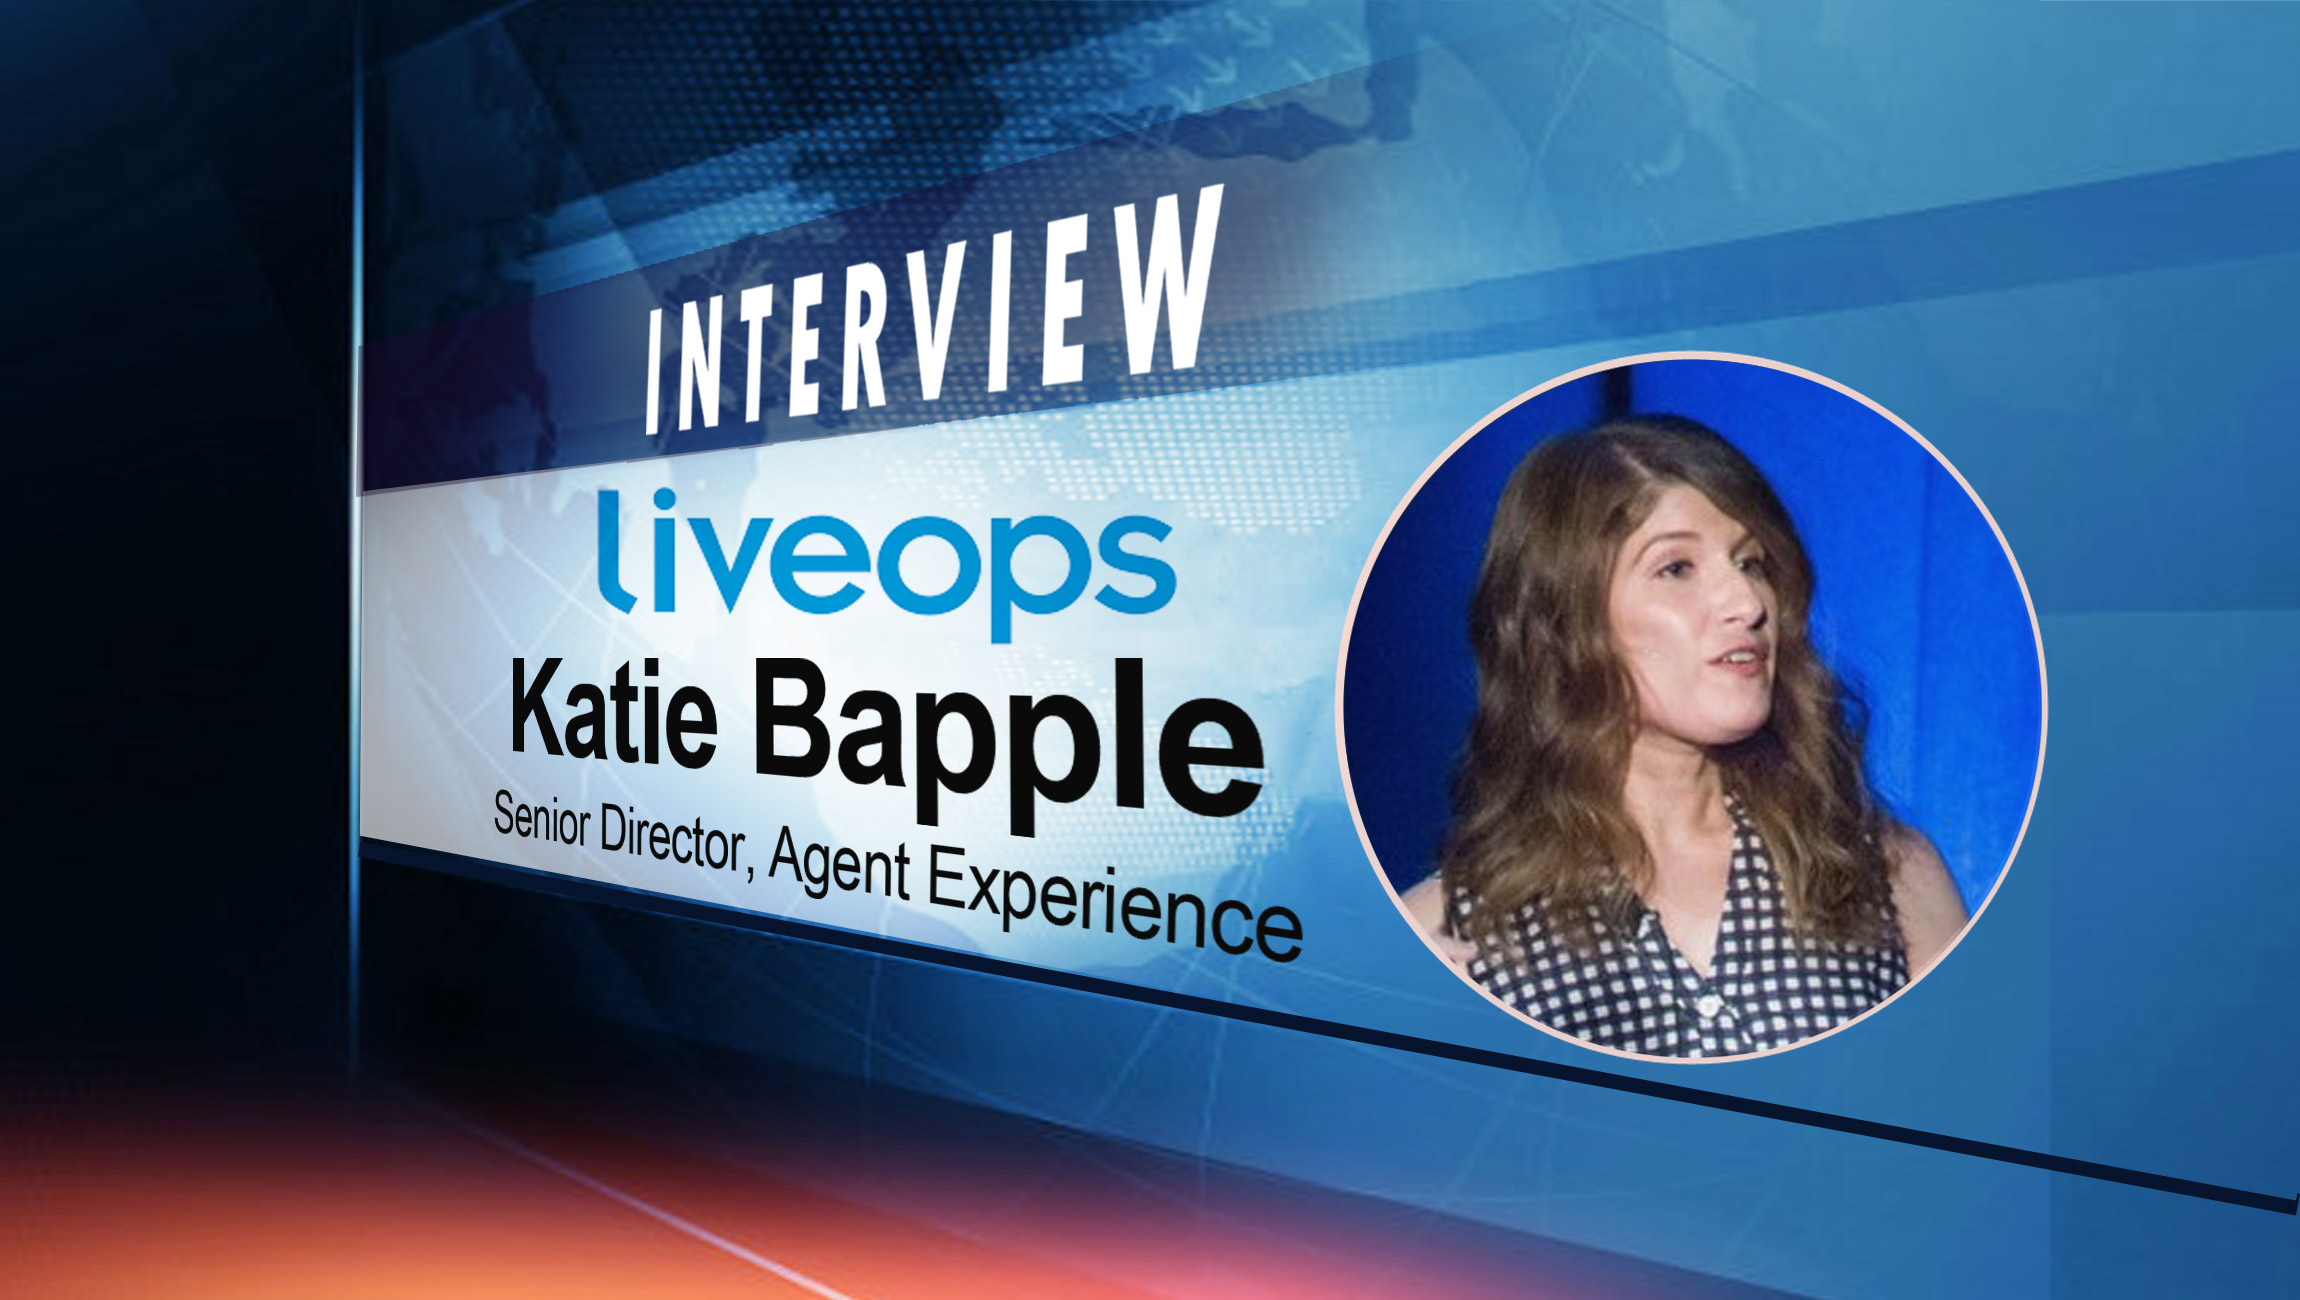 SalesTechStar Interview with Katie Bapple, Senior Director Agent Experience at Liveops